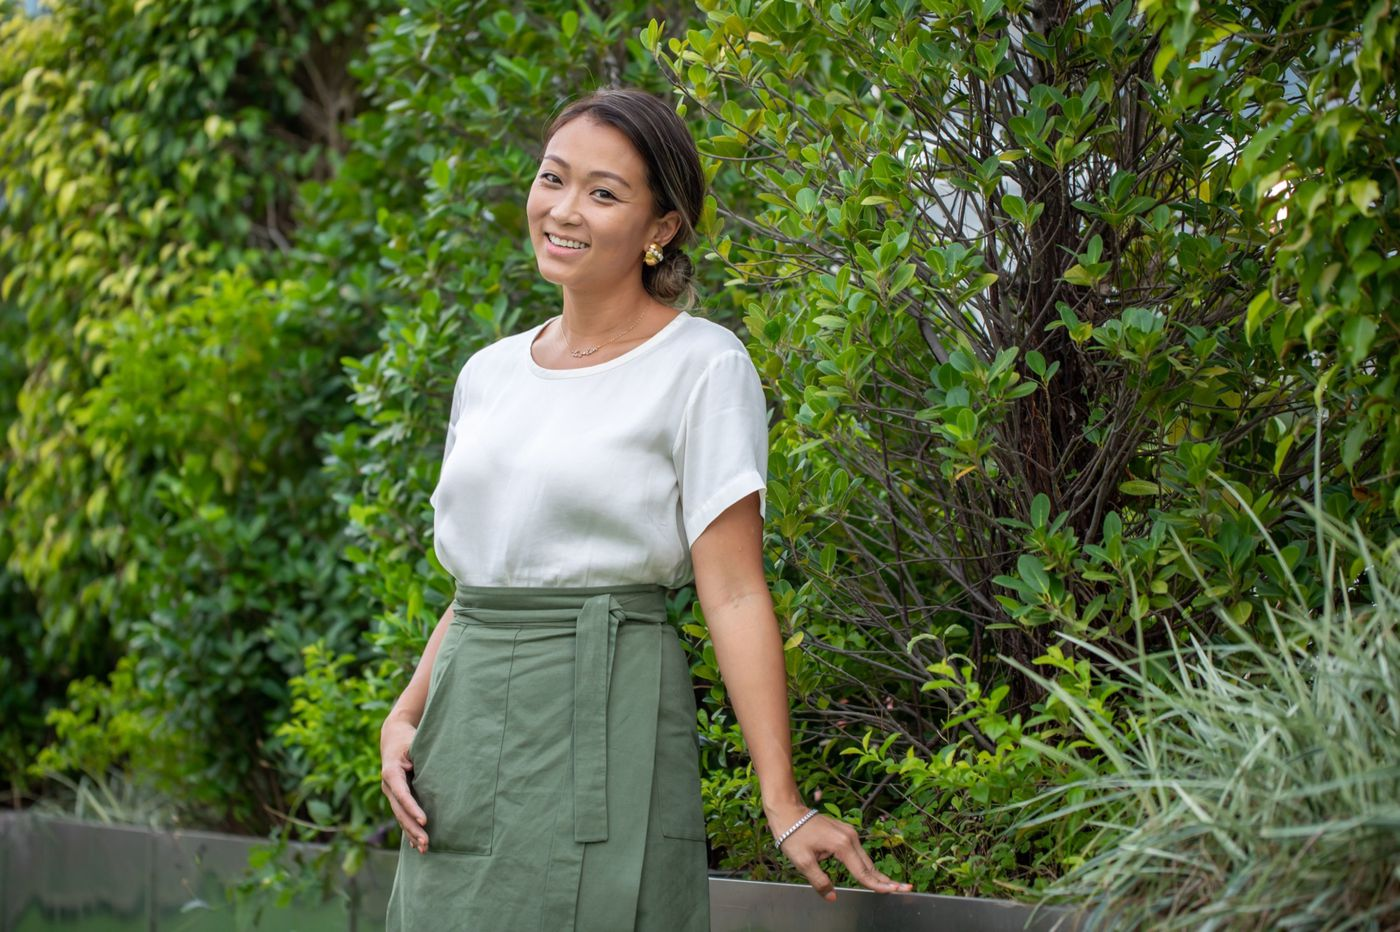 Fast-fashion heiress asks shoppers to buy less in green push